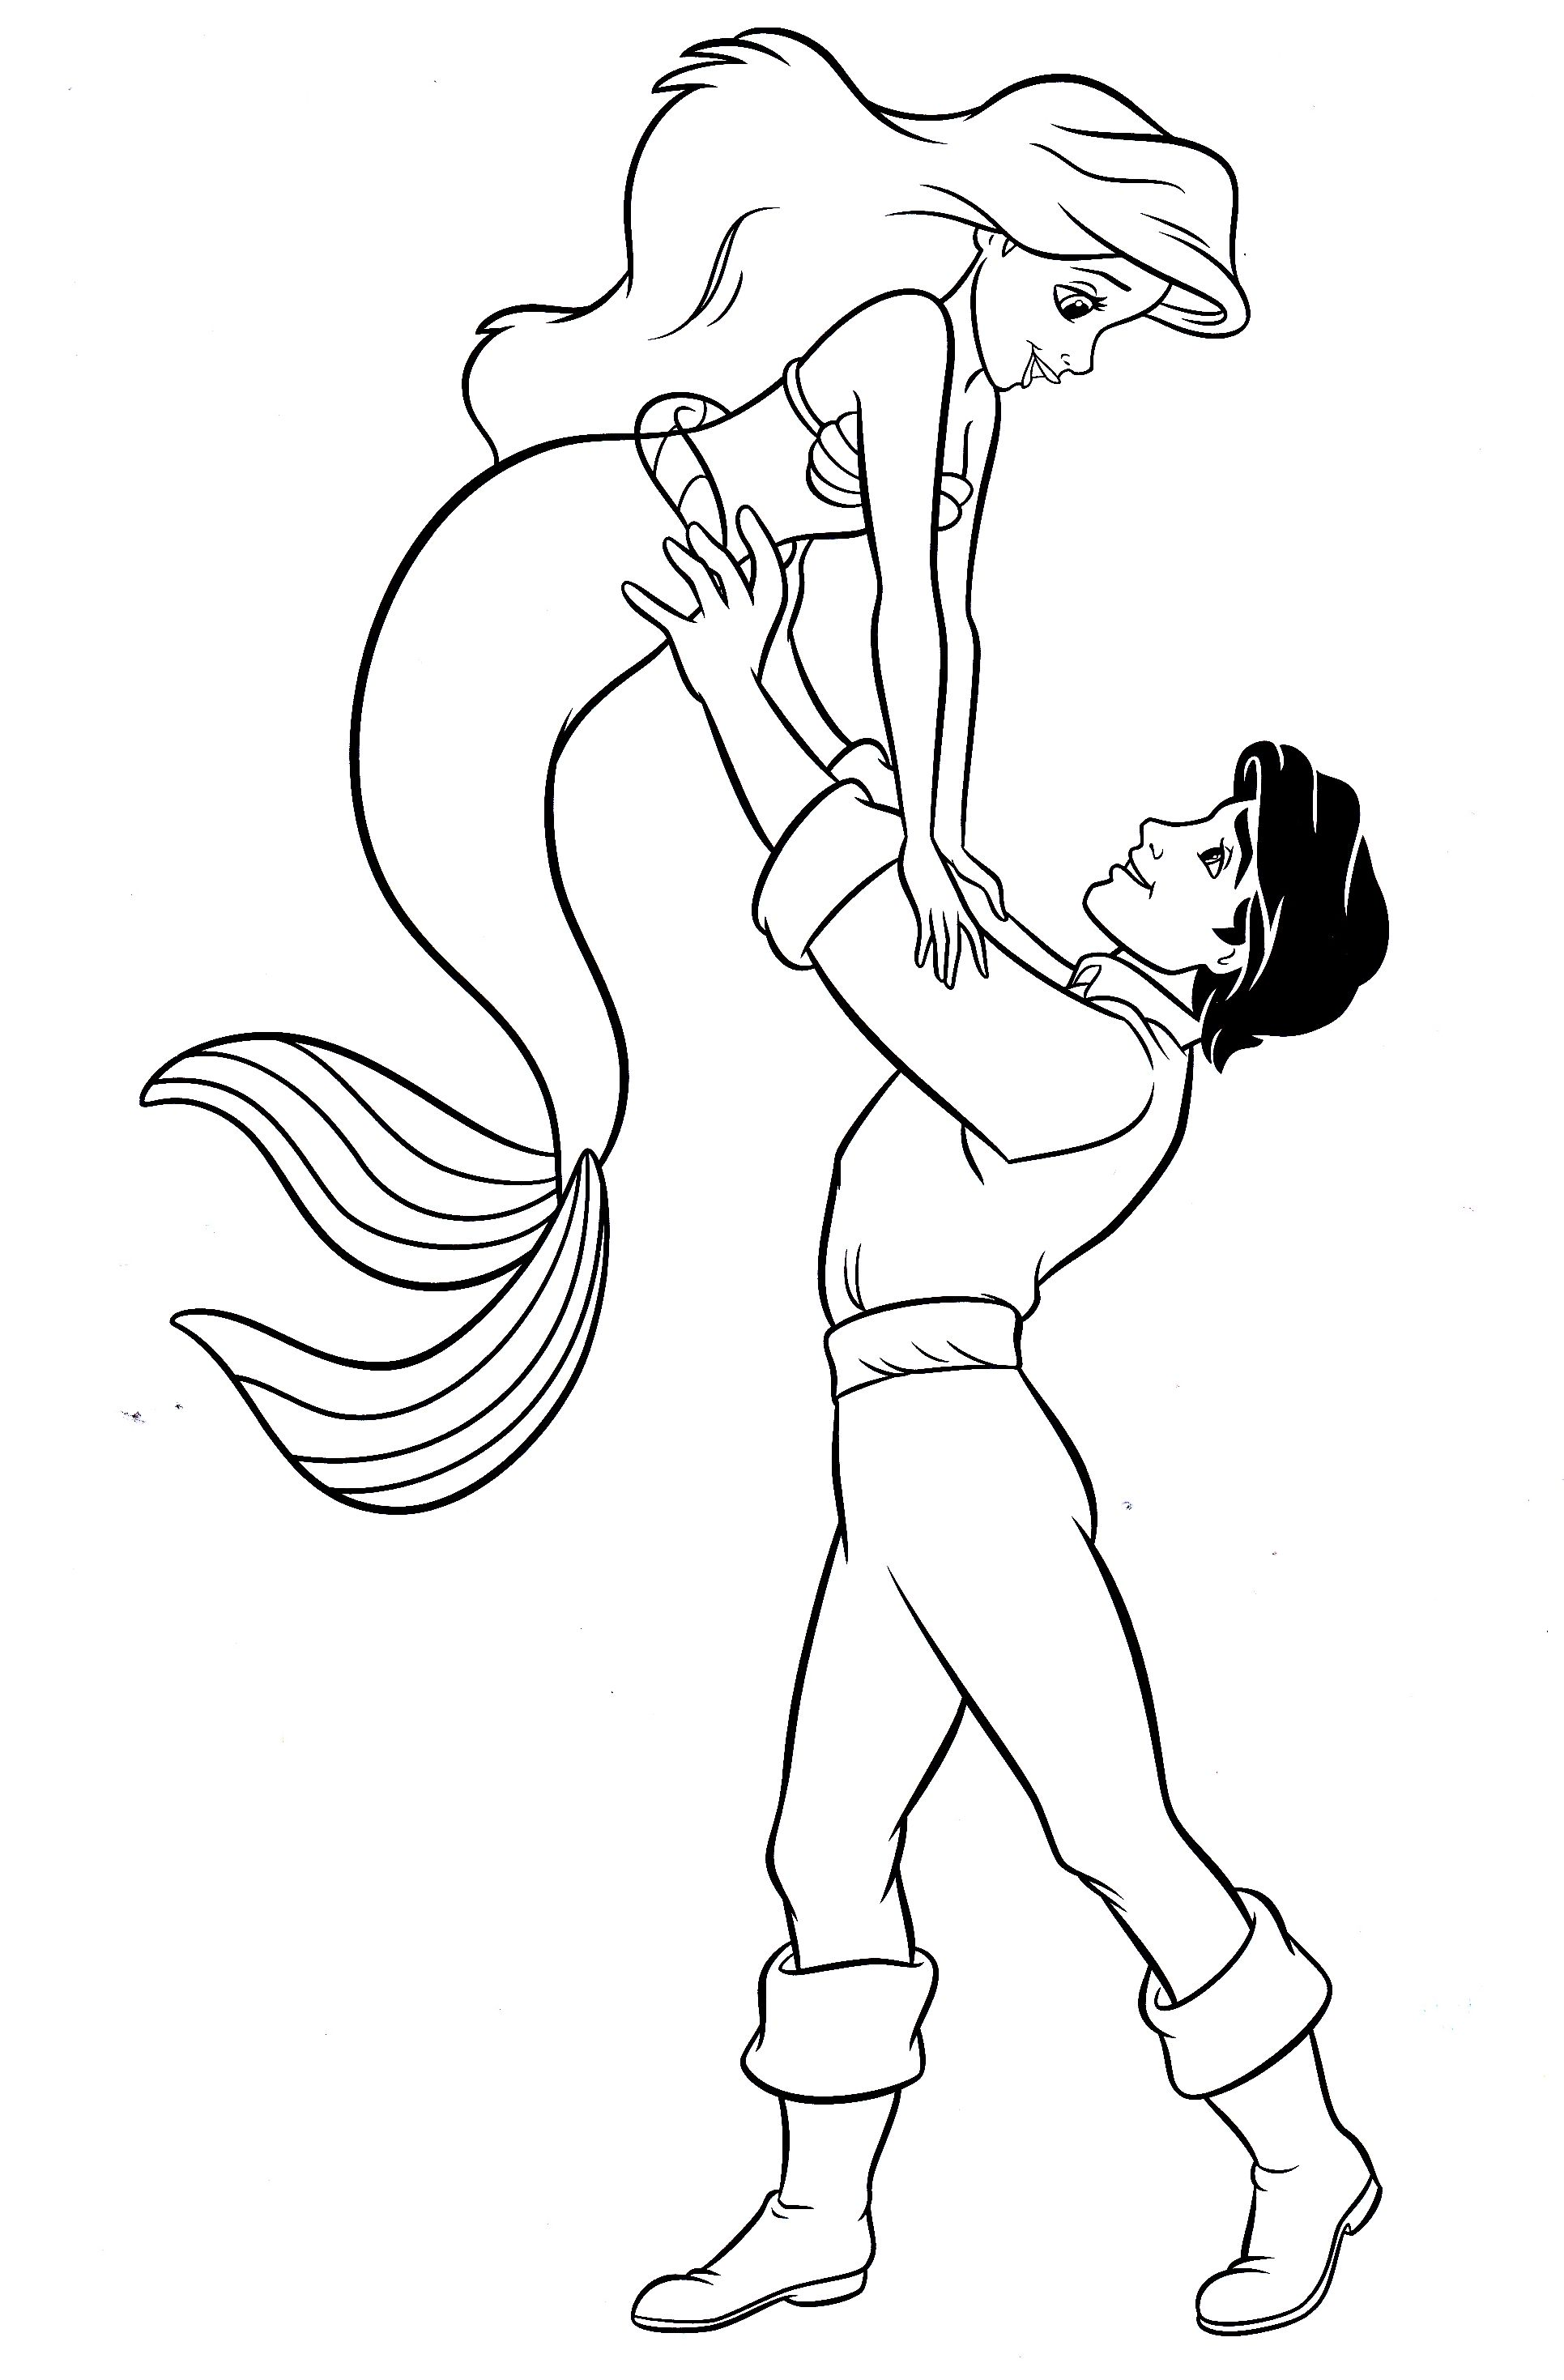 Princess Ariel & Prince Eric Coloring Pages | Coloring pages ...